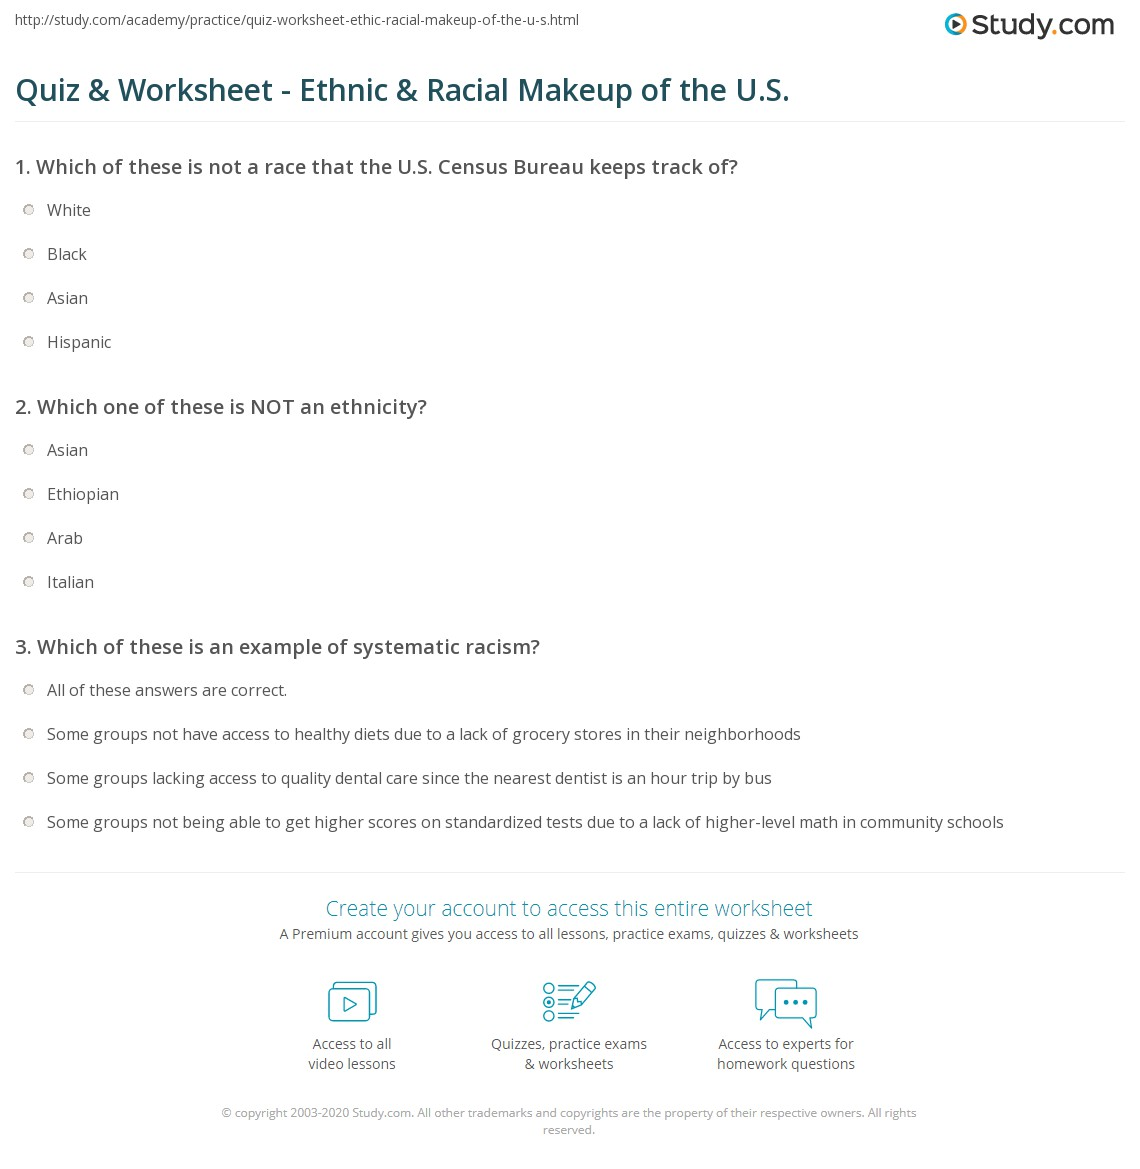 How To Apply Makeup Worksheets Saubhaya Makeup